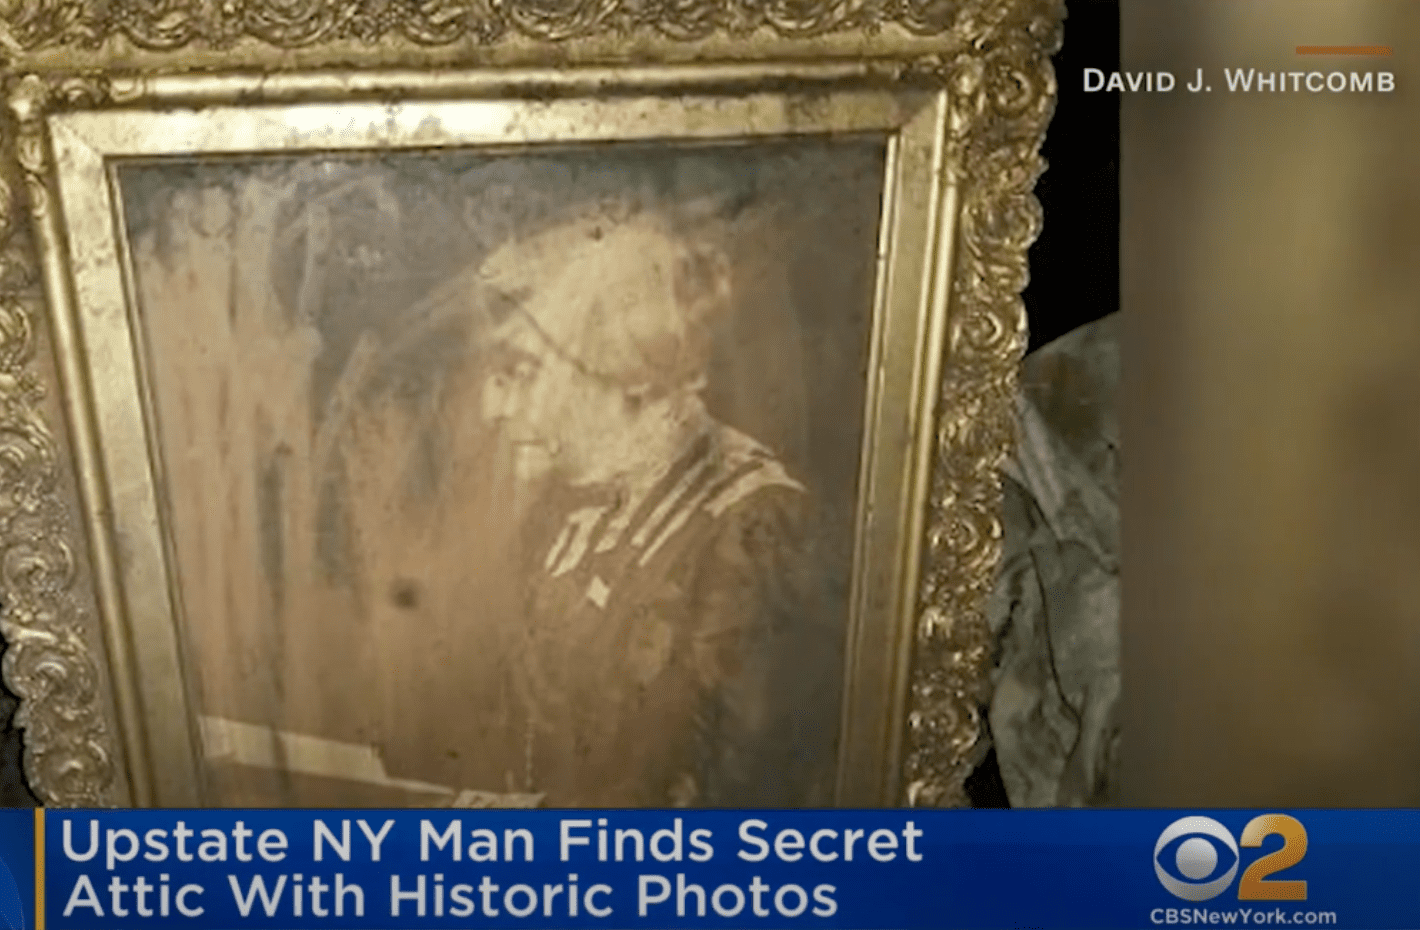 In a hidden attic in New York, a man found an old framed photograph of Susan B. Anthony | Photo: Youtube/CBS New York